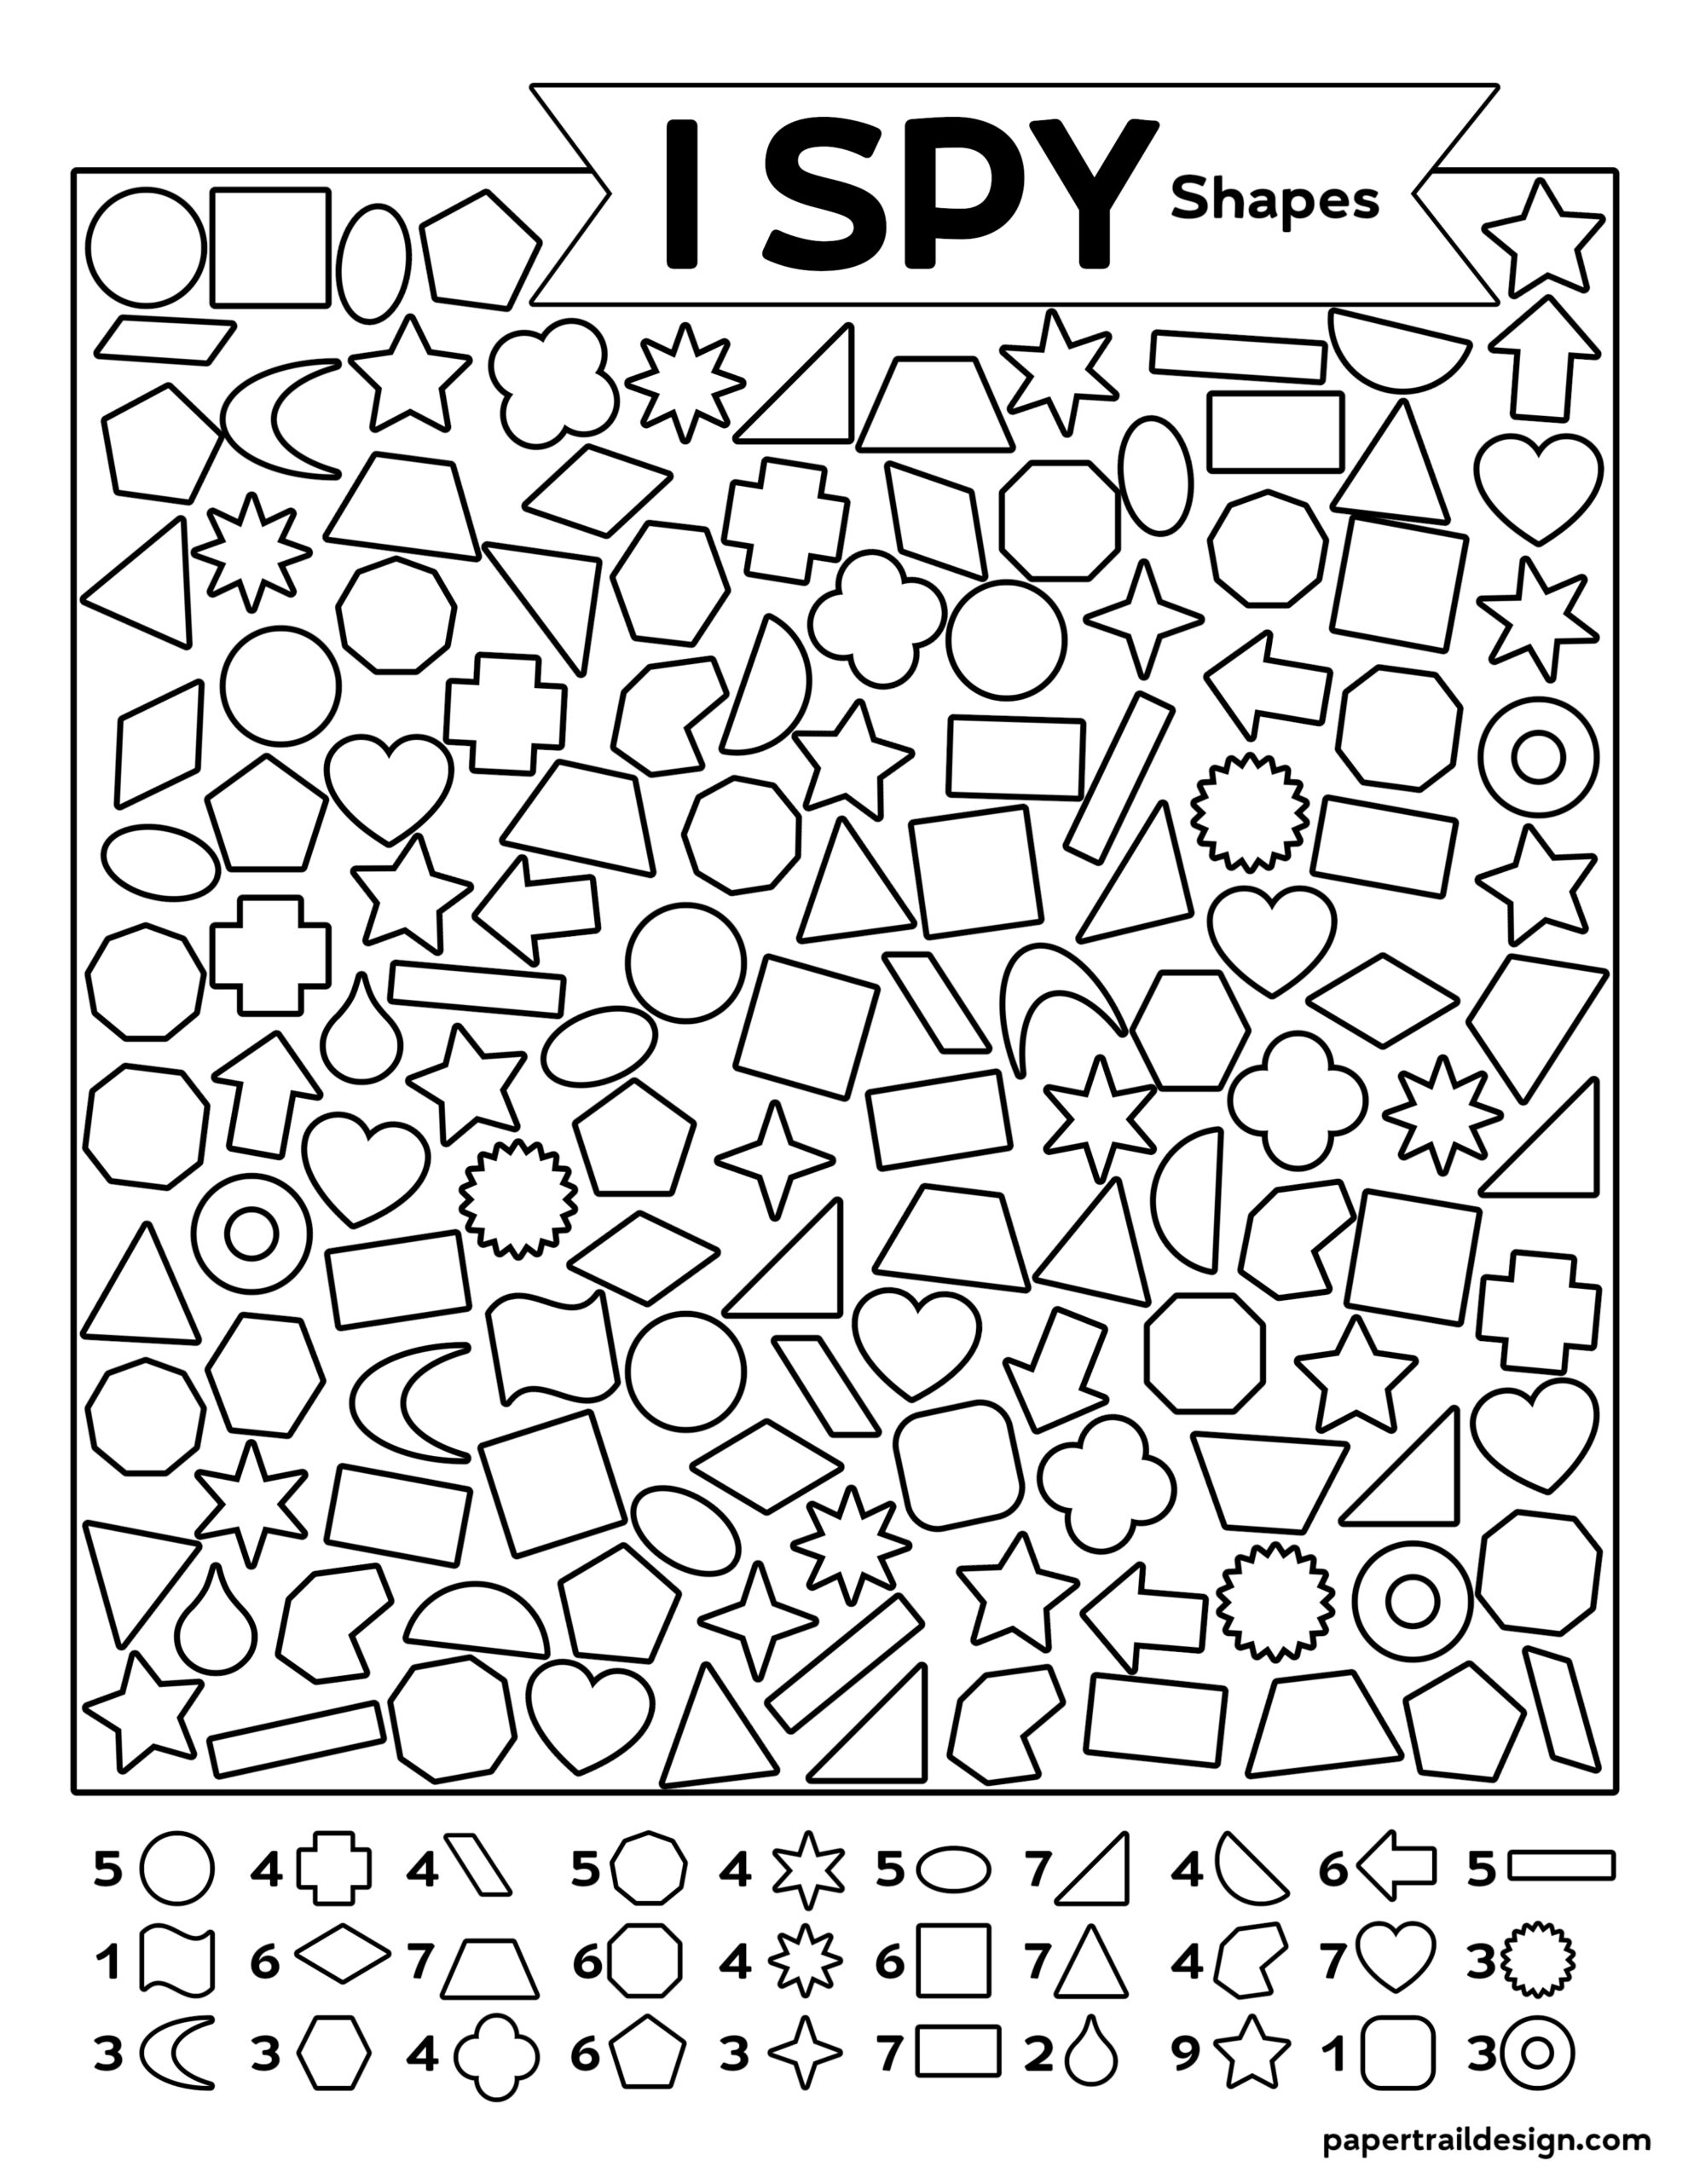 Free Printable I Spy Shapes Activity